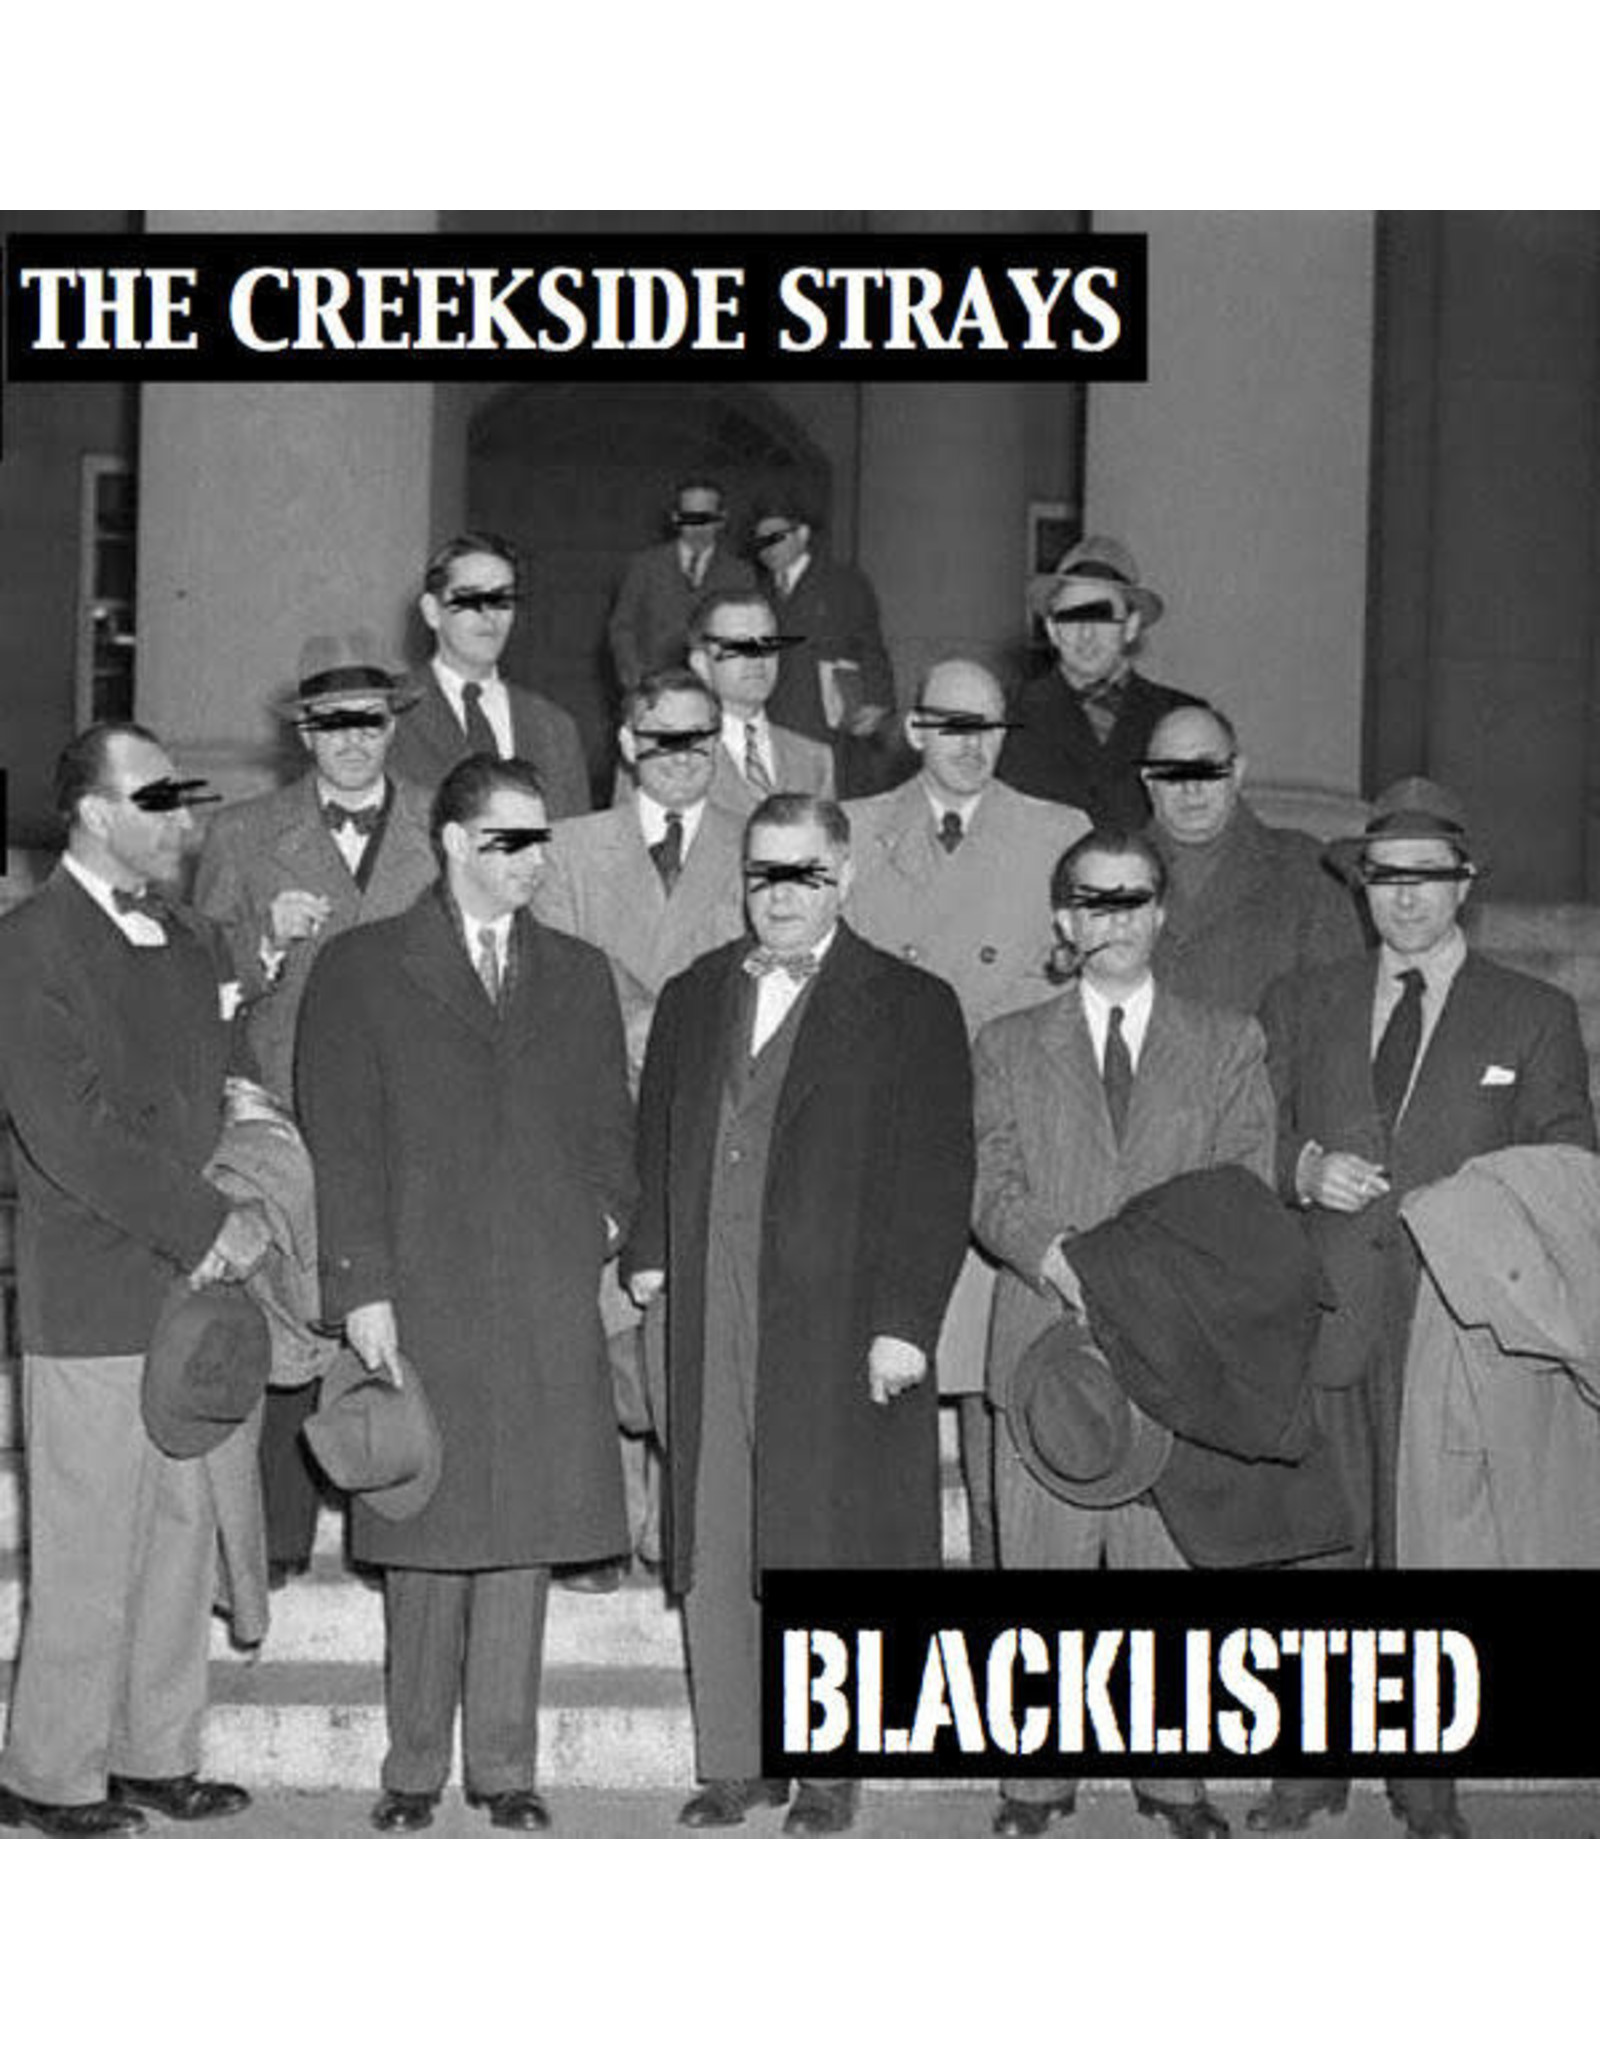 Creekside Strays, The - Blacklisted CD